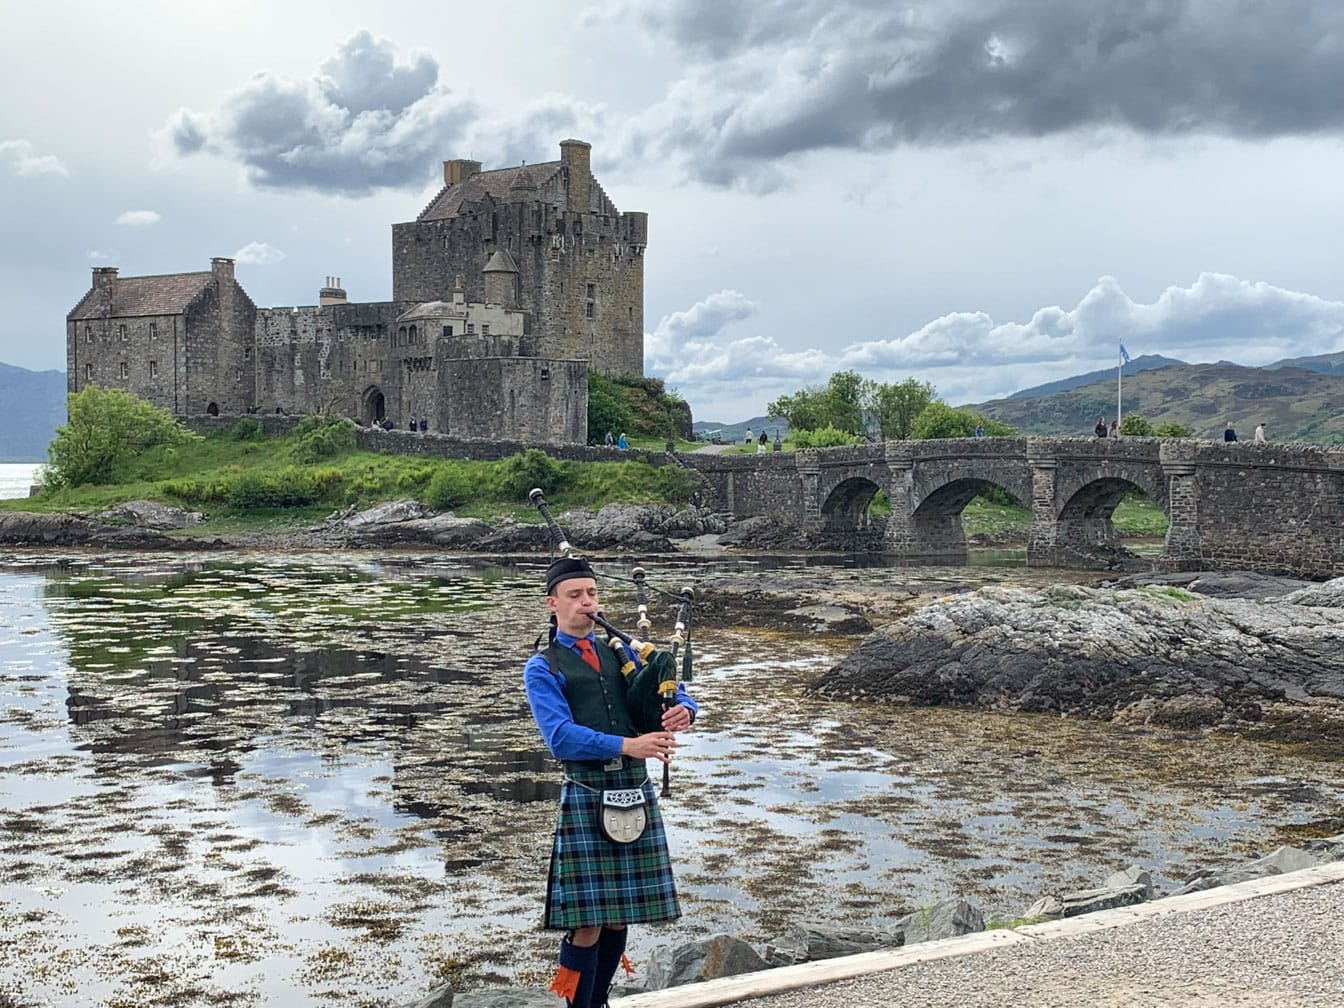 Bigpiper on the Grand Western Scenic Wonders journey